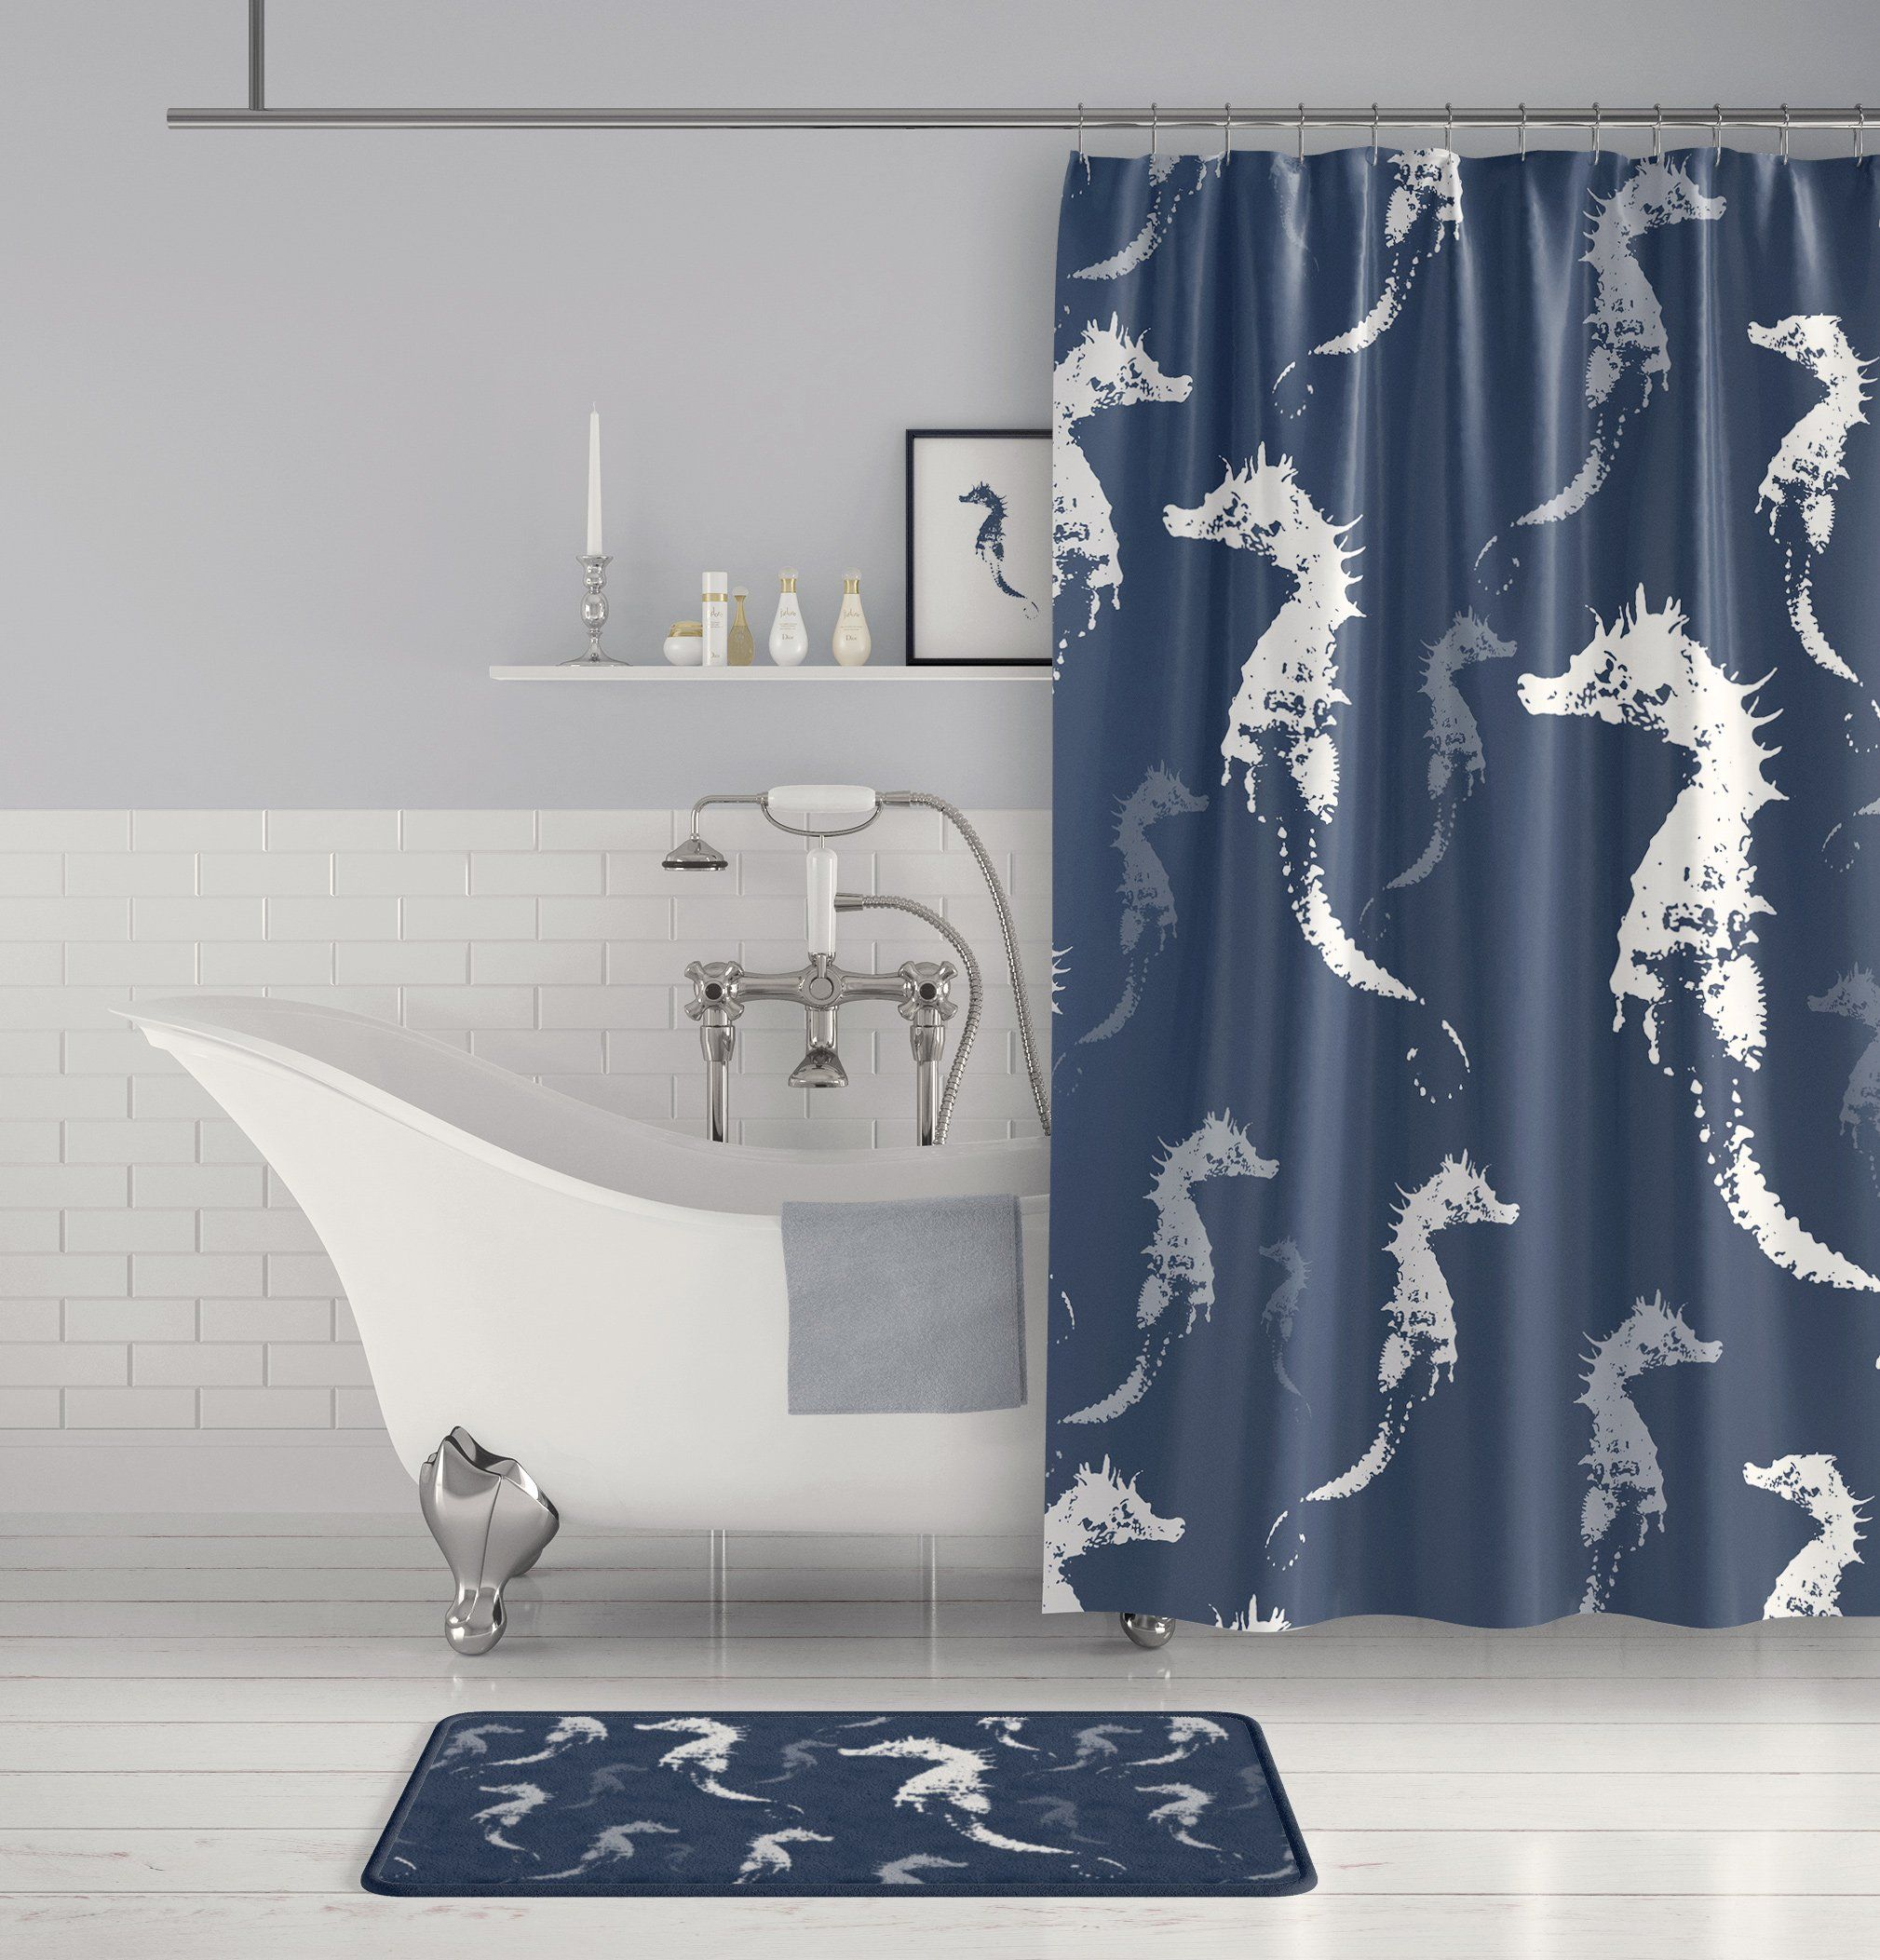 Seahorse Shower Curtain Slate Blue Gray And White For The Sophisticated Beach Bathroom In 2020 White Bathroom Designs Kid Bathroom Decor Blue Shower Curtains